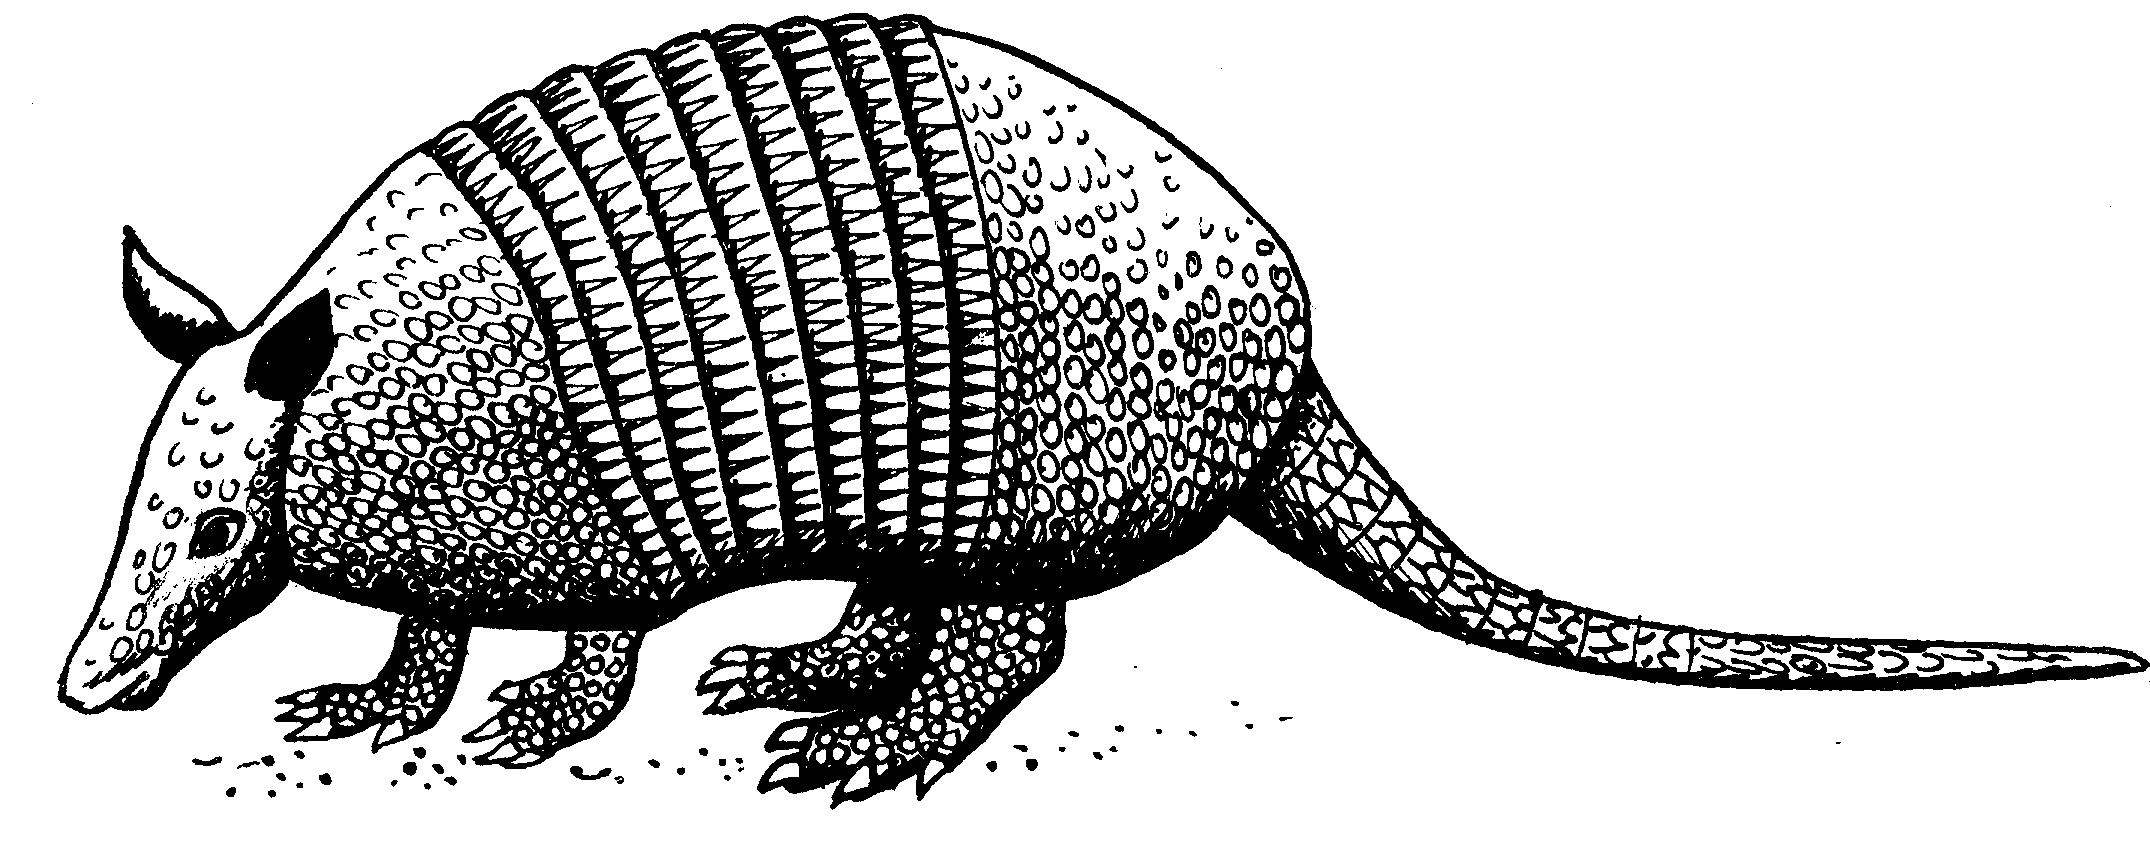 Armadillo Png Black And White & Free Armadillo Black And White.png.